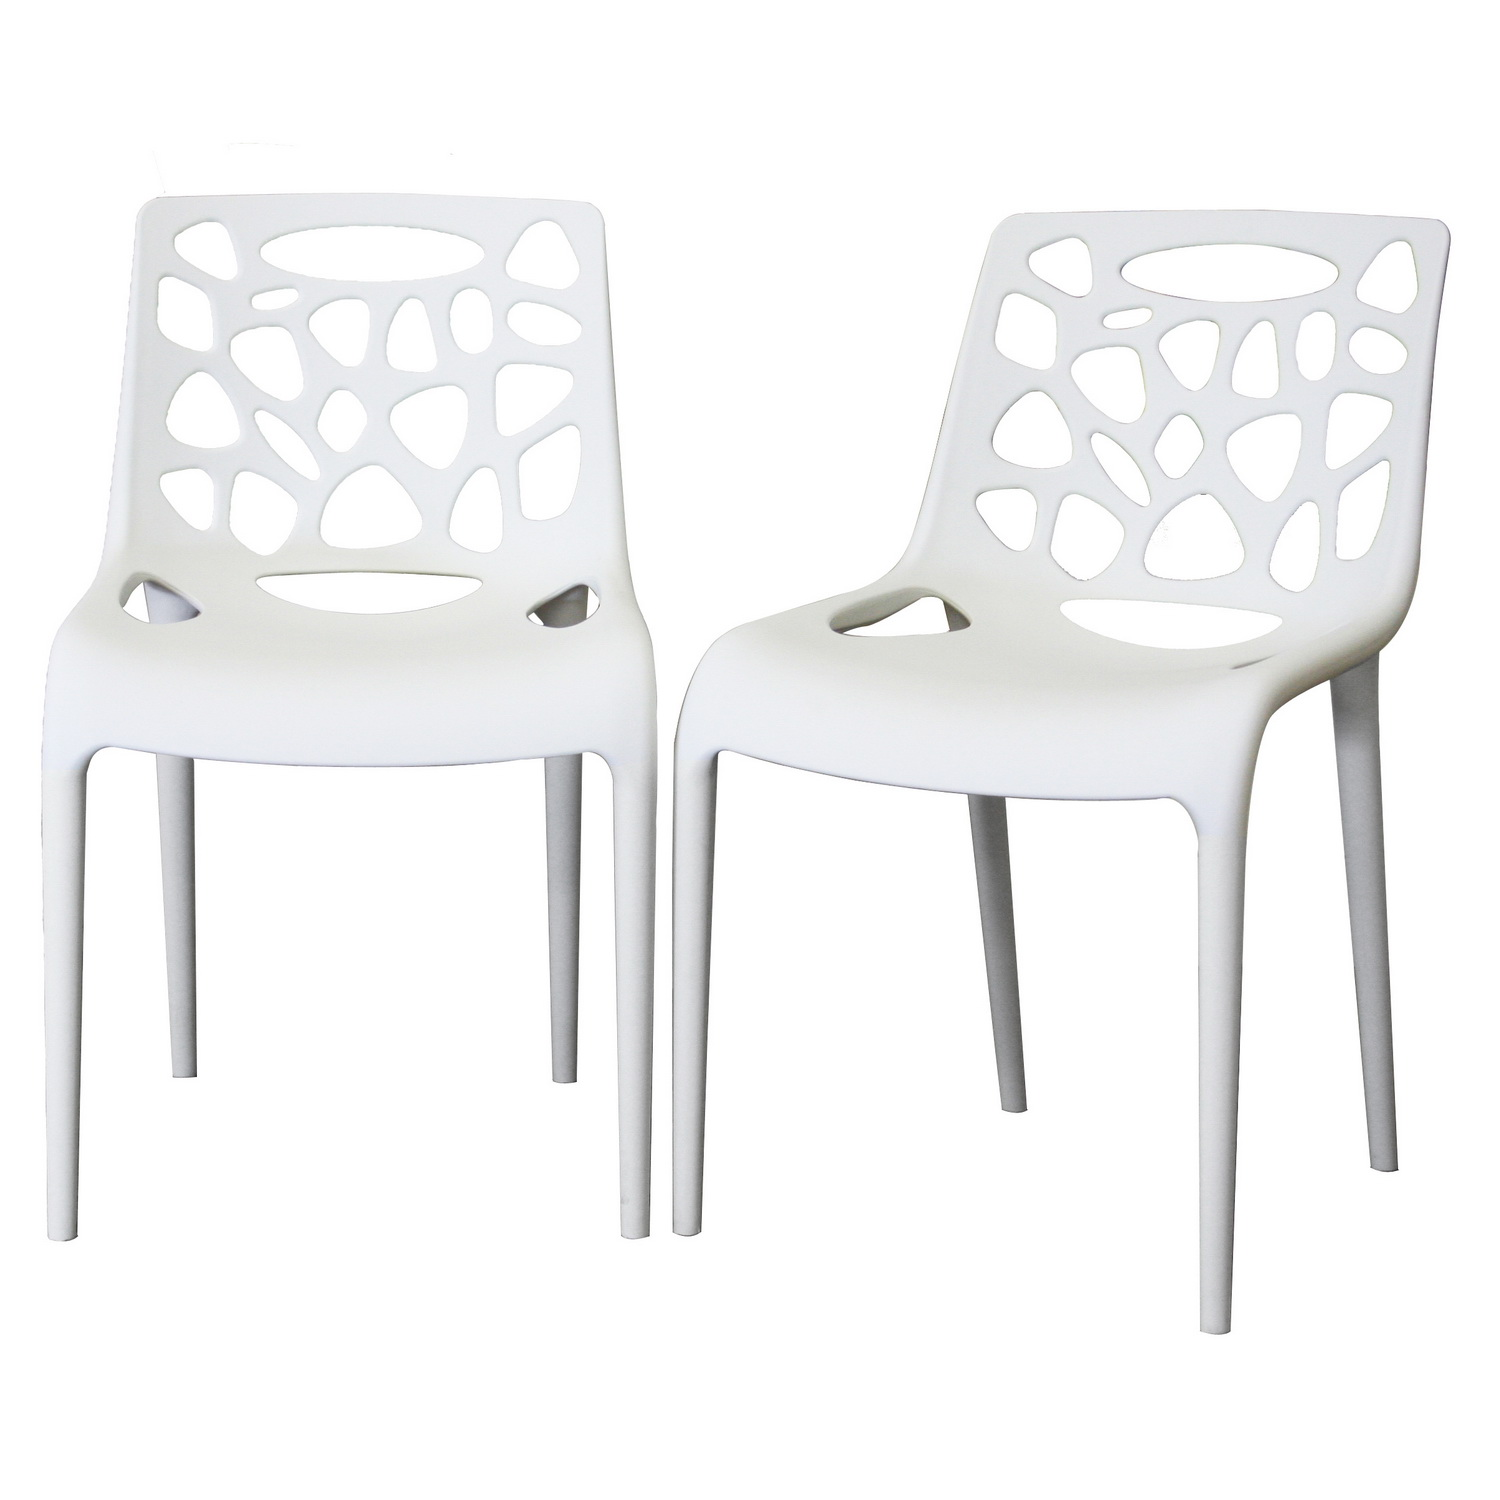 White Modern Chair Modern Plastic Dining Chairs Chair Pads And Cushions